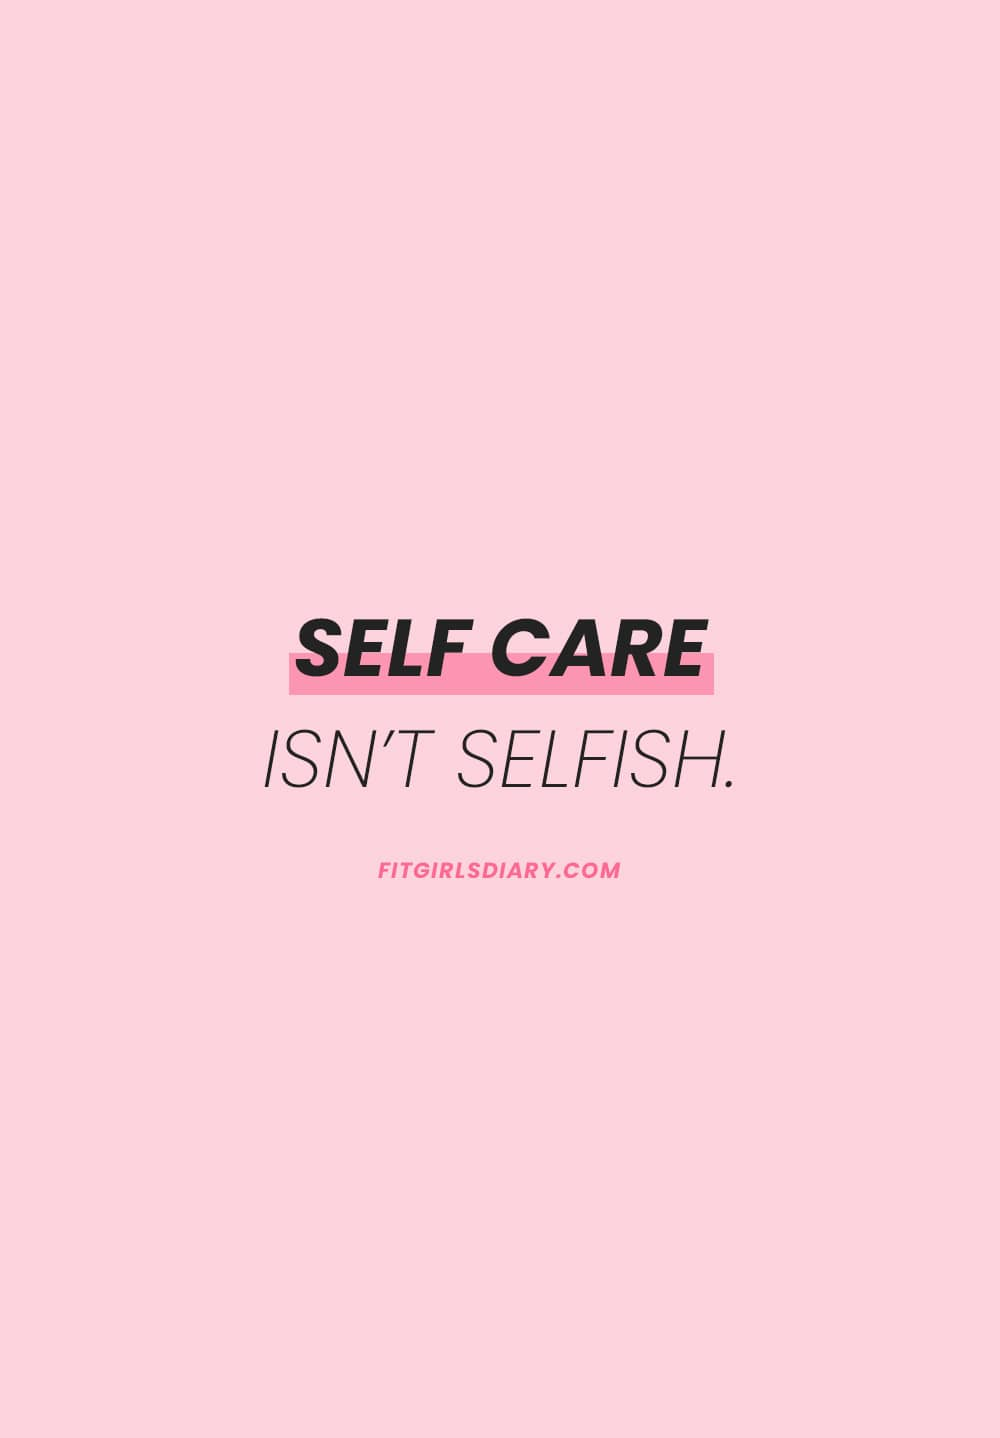 self care checklist - self care activities